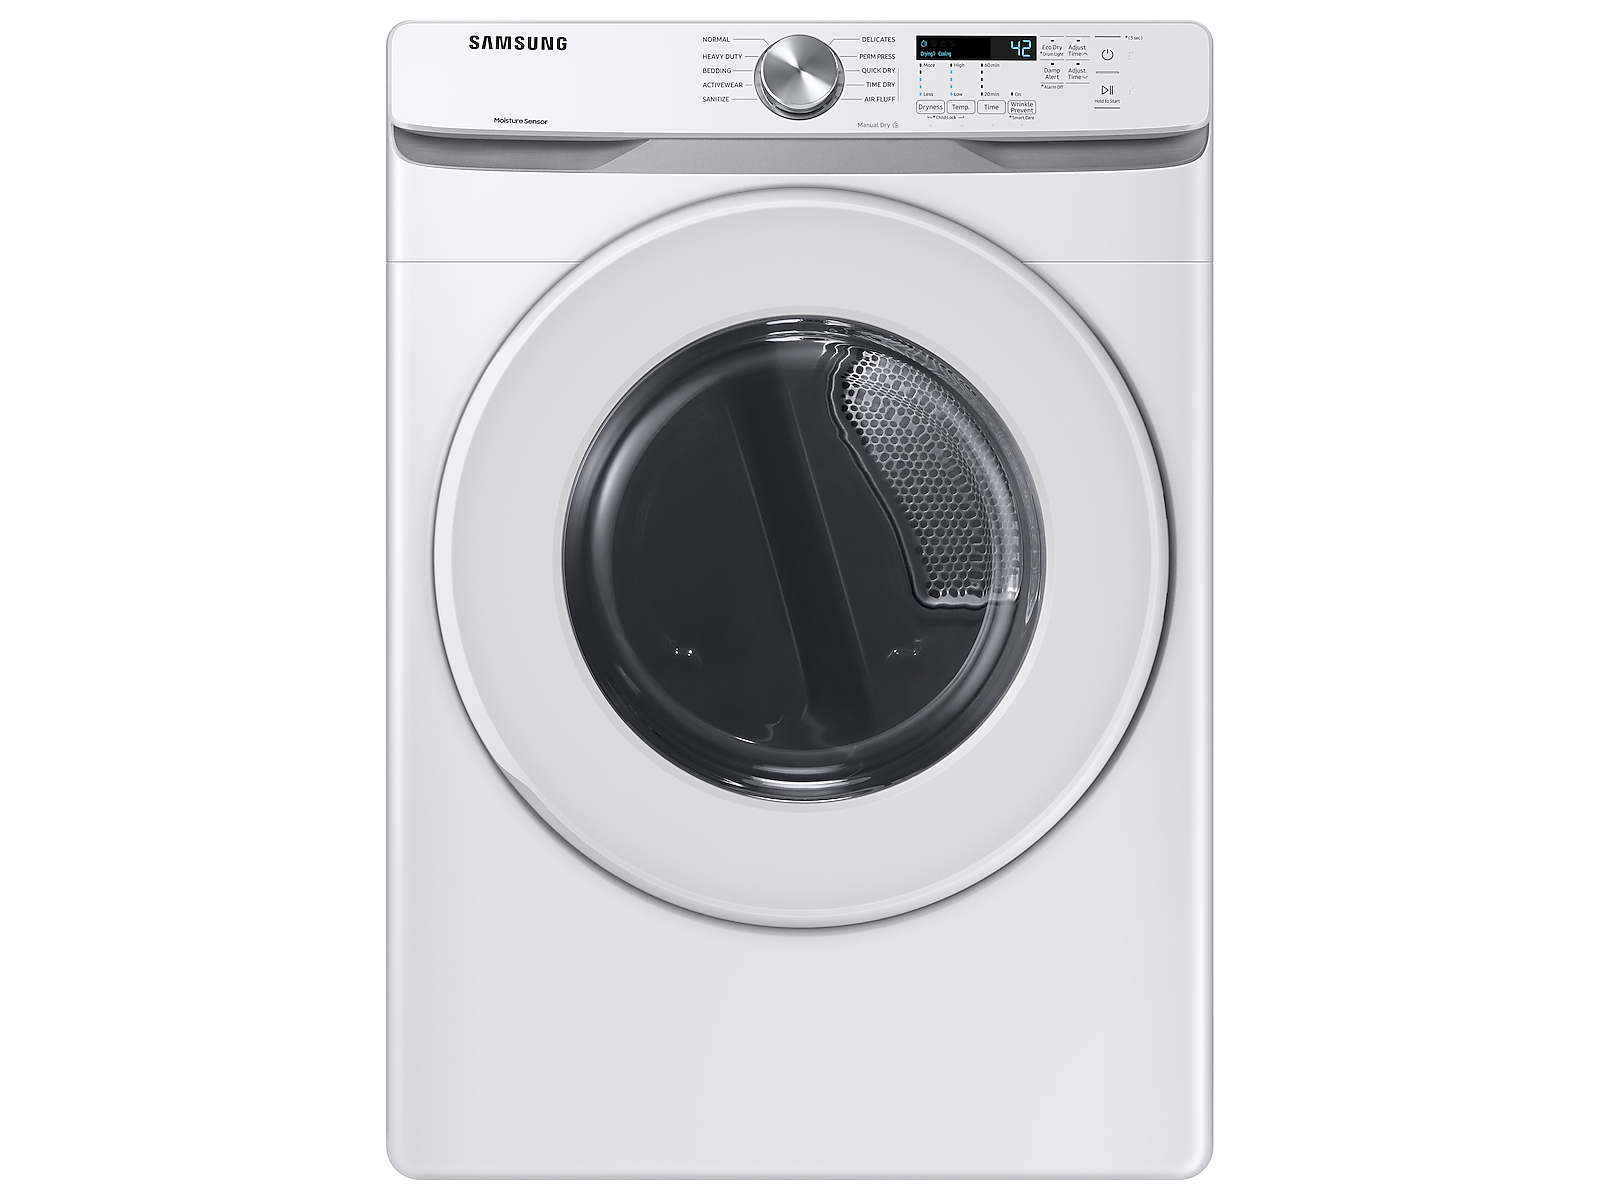 Samsung coupon: Samsung 7.5 cu. ft. Gas Long Vent Dryer with Sensor Dry in White (DVG45T6020W/A3)